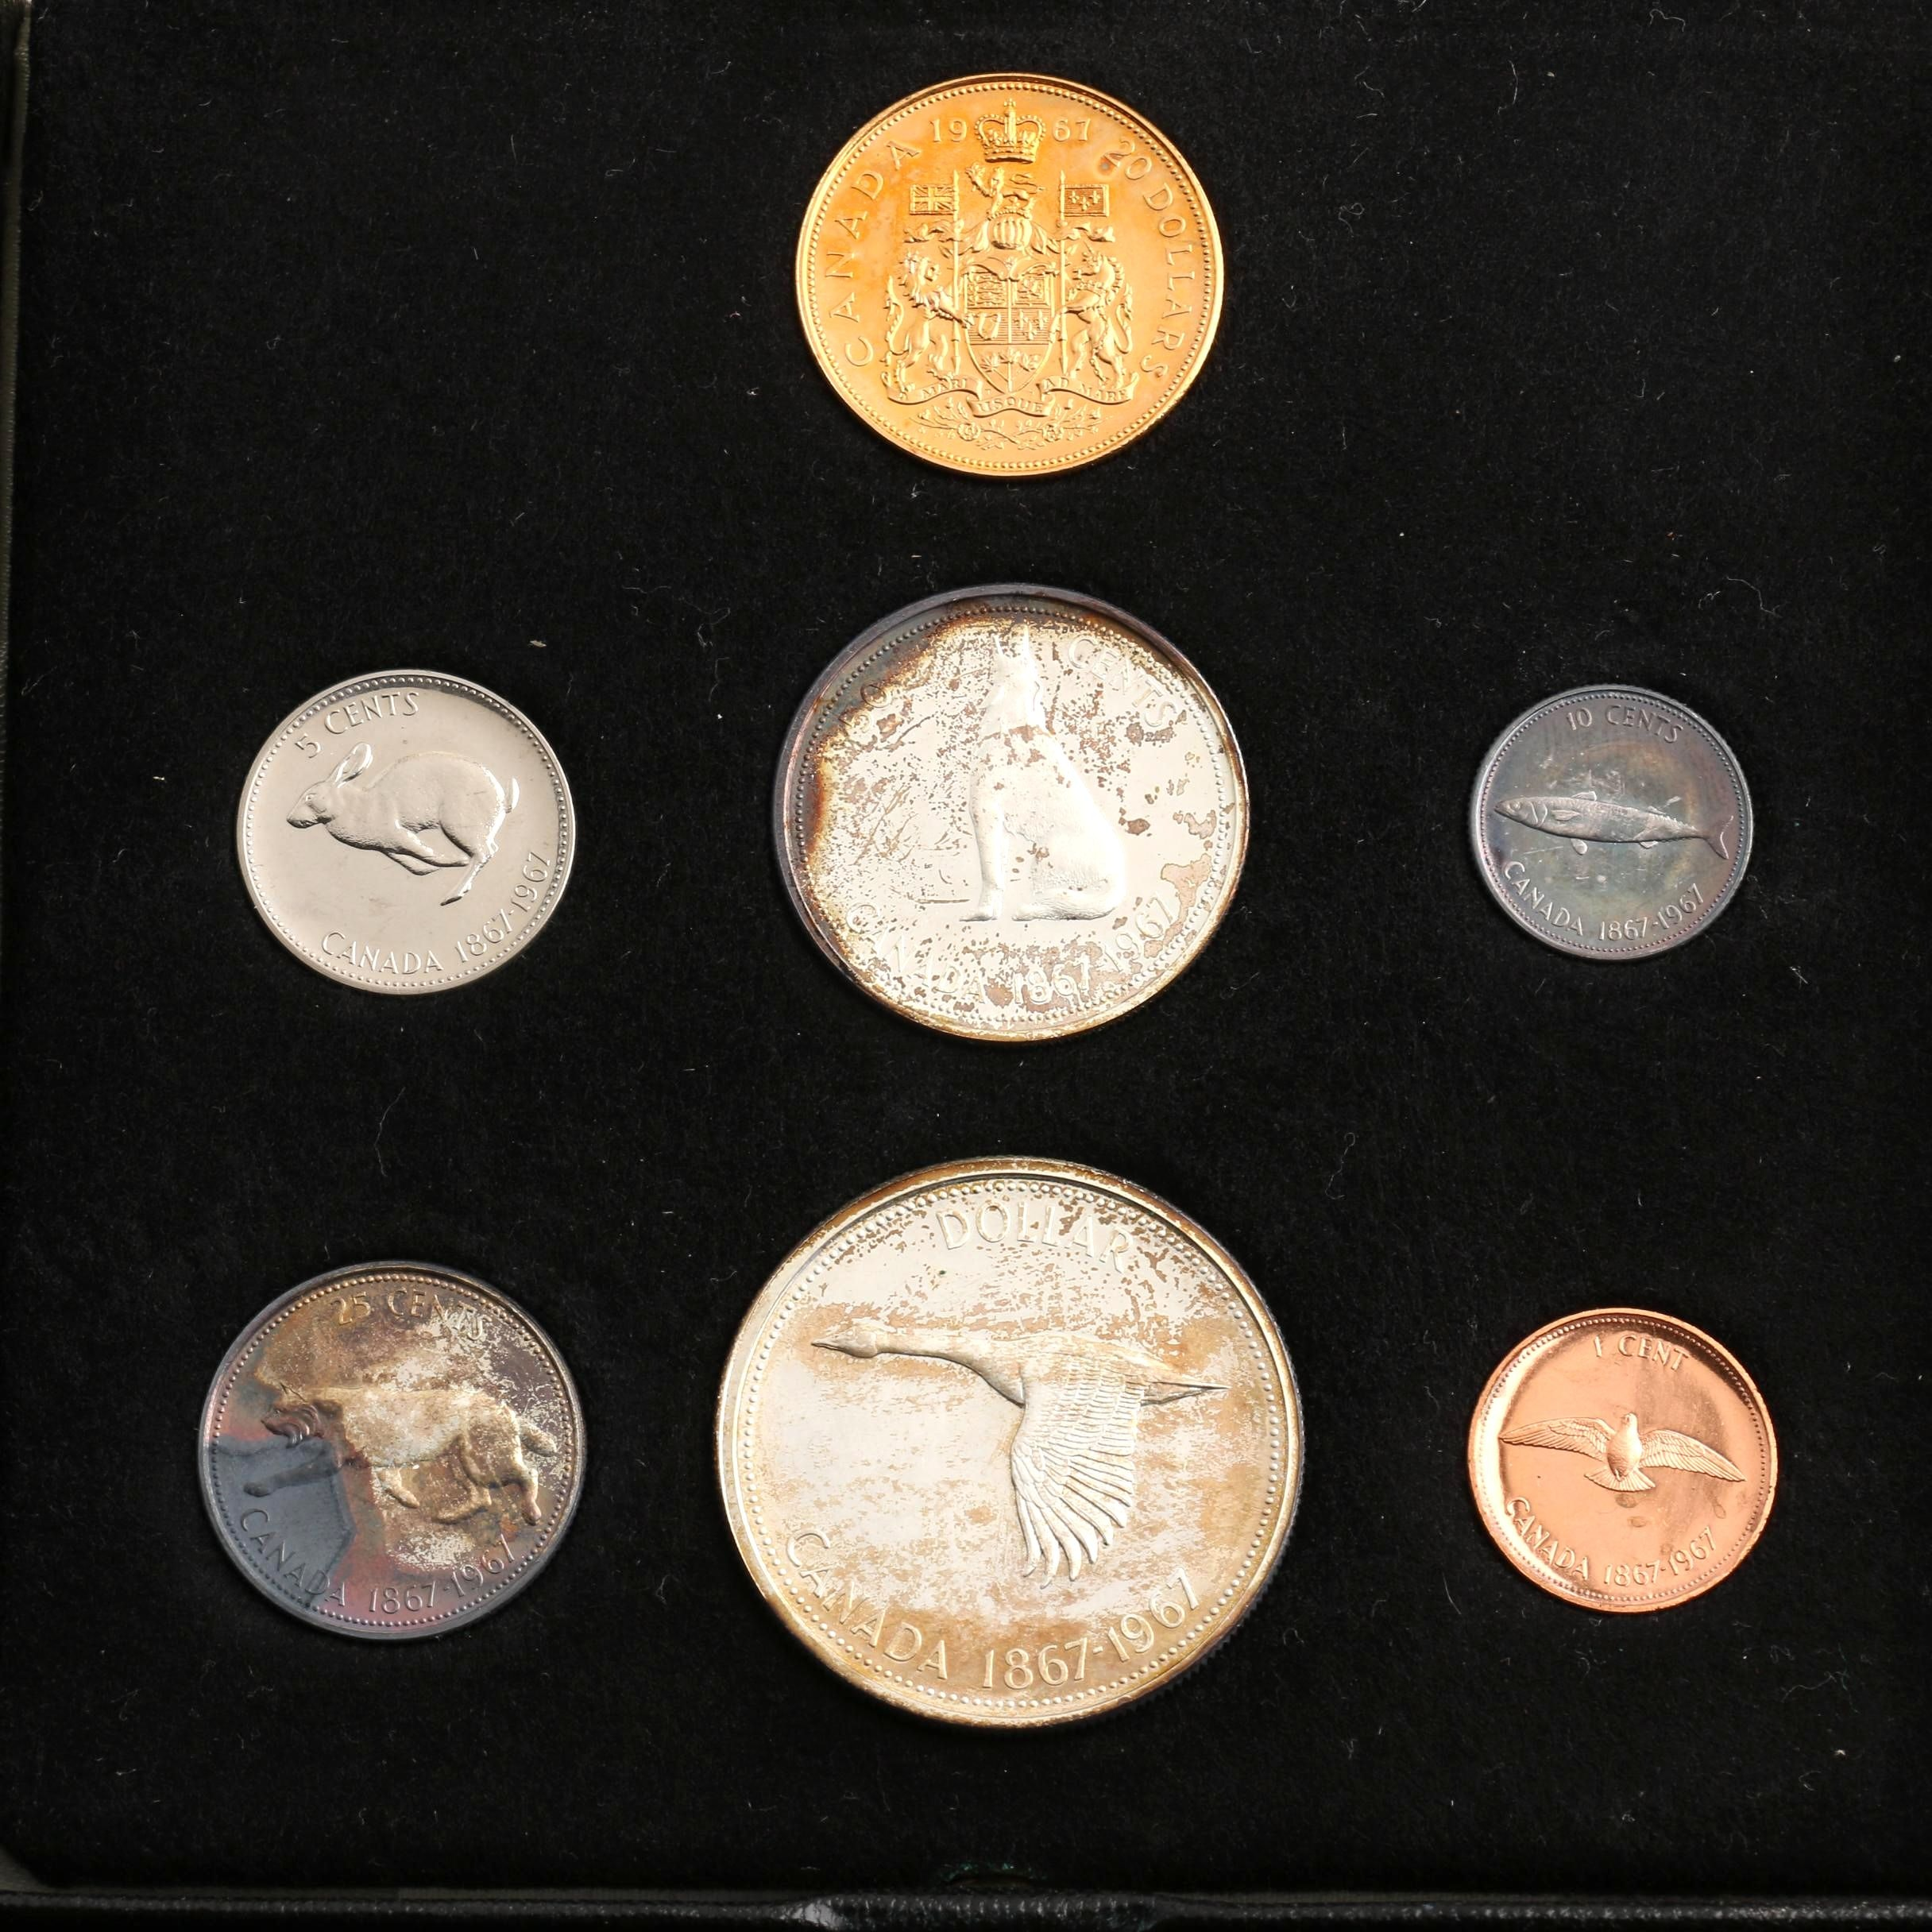 1867-1967 Commemorative Canadian Seven-Coin Mint Set with $20 Half Oz. Gold Coin